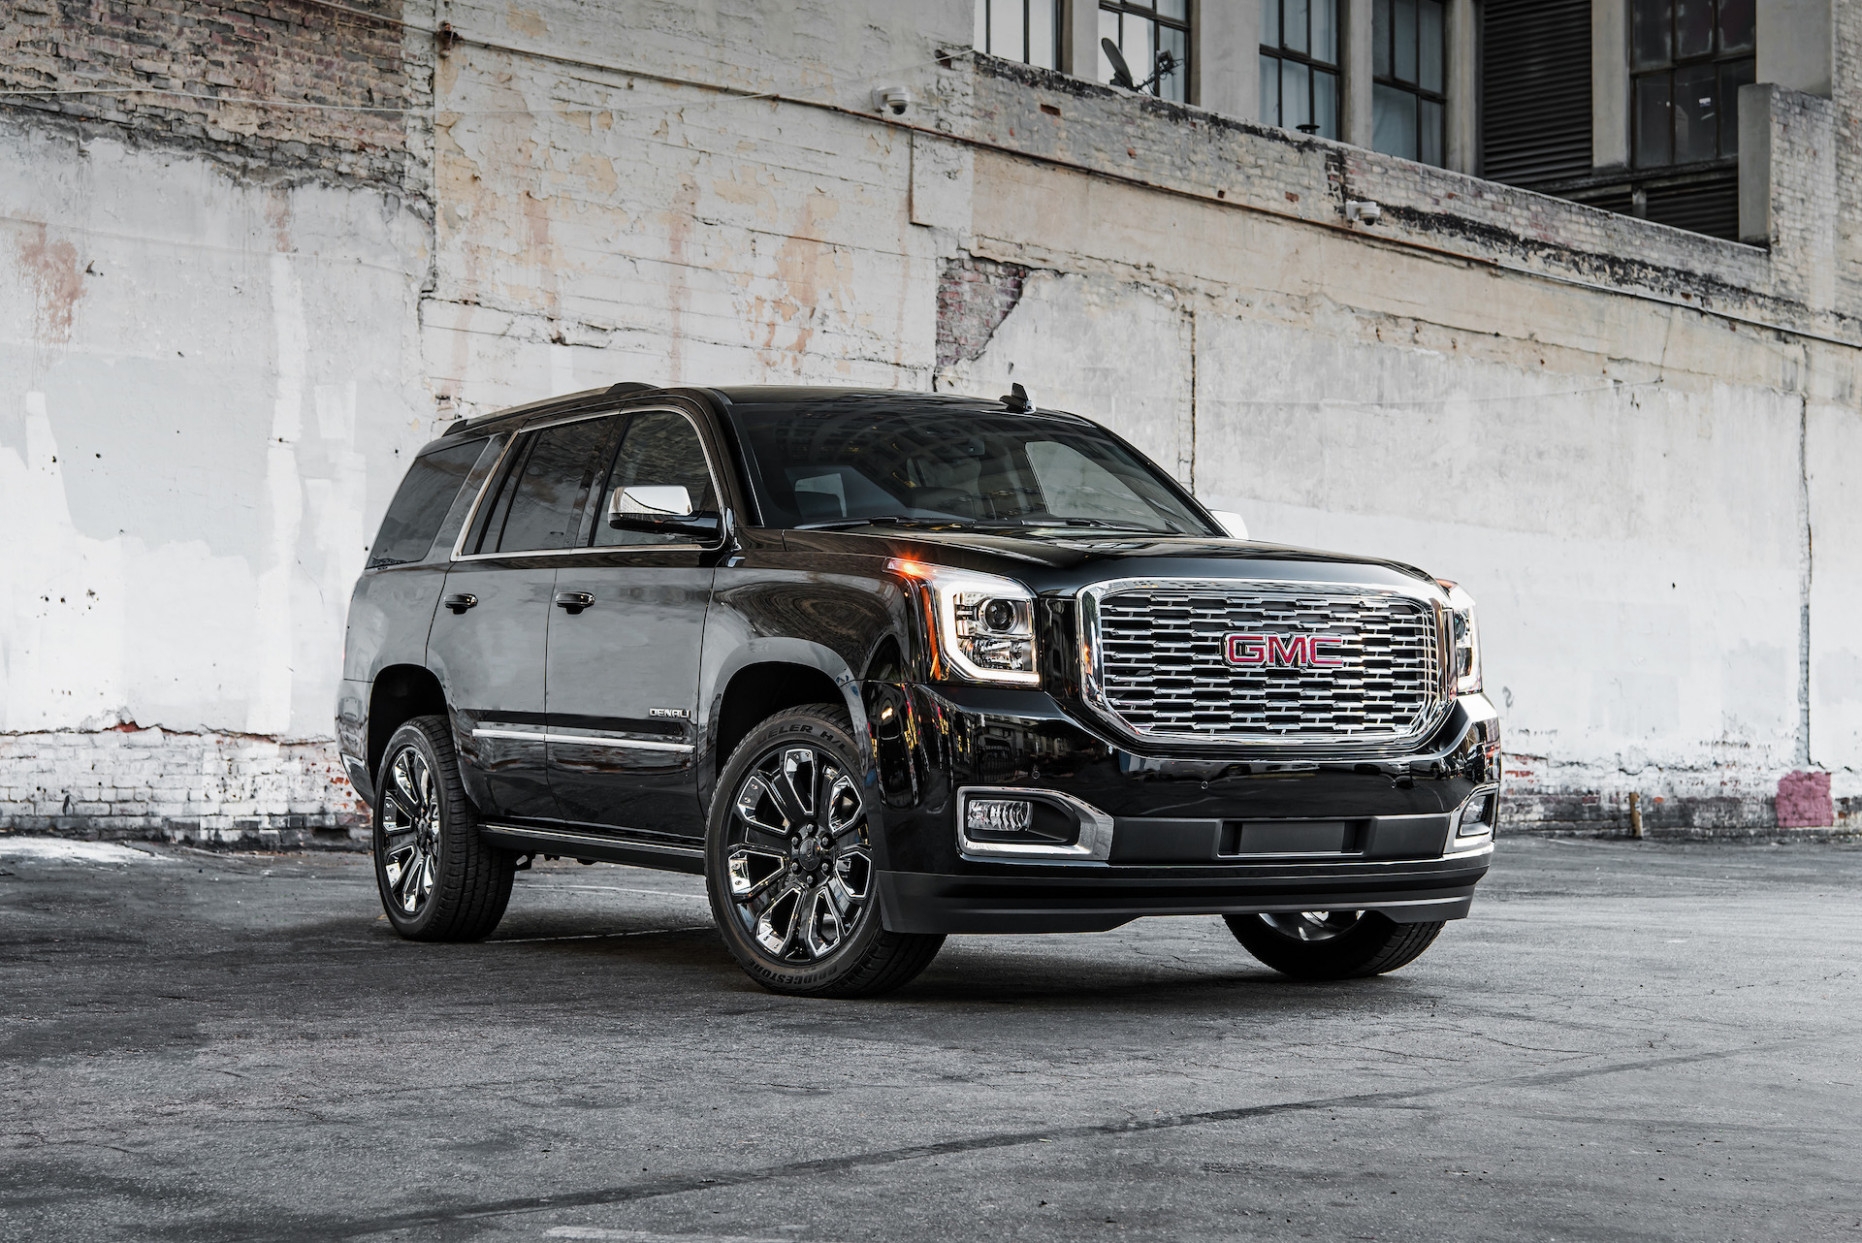 7 GMC Yukon Review, Ratings, Specs, Prices, and Photos - The ..